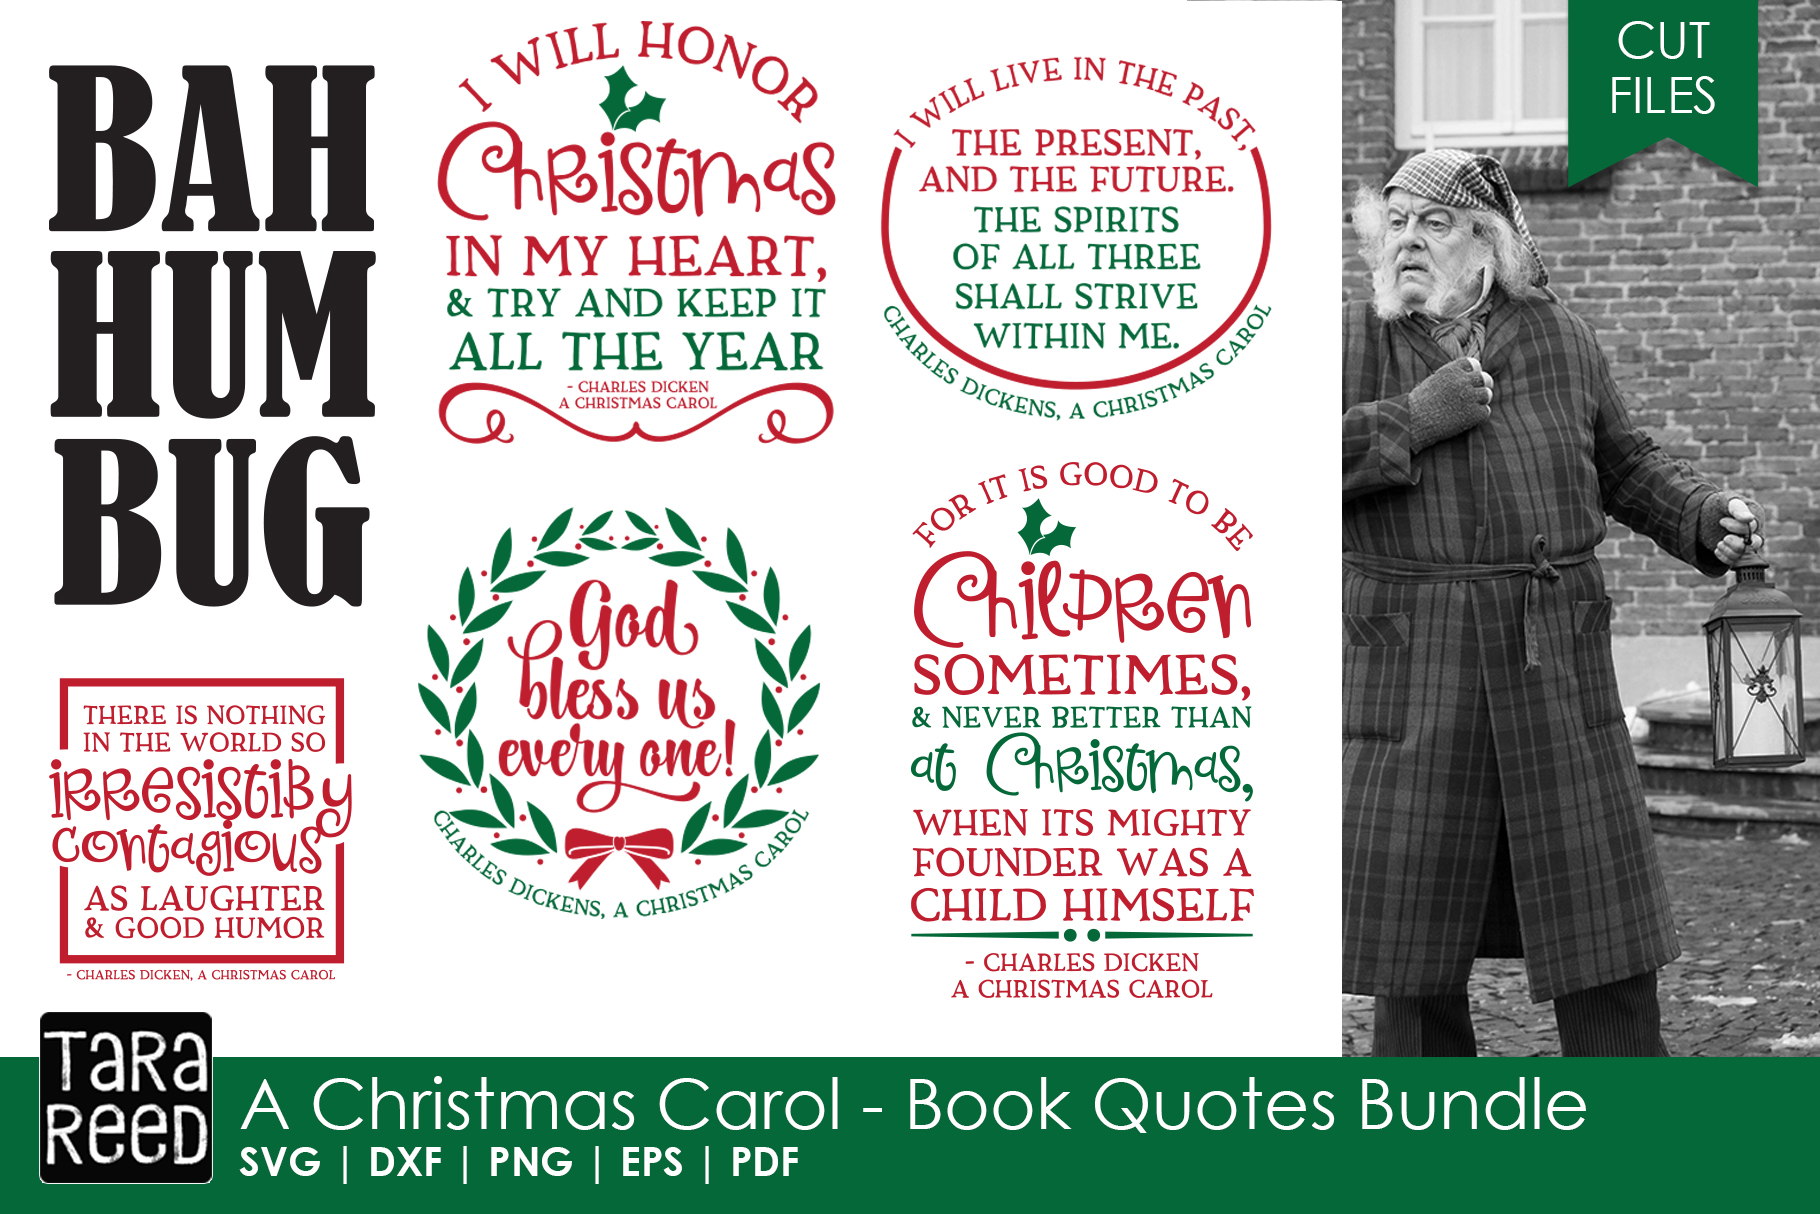 A Christmas Carol Book Quotes Bundle